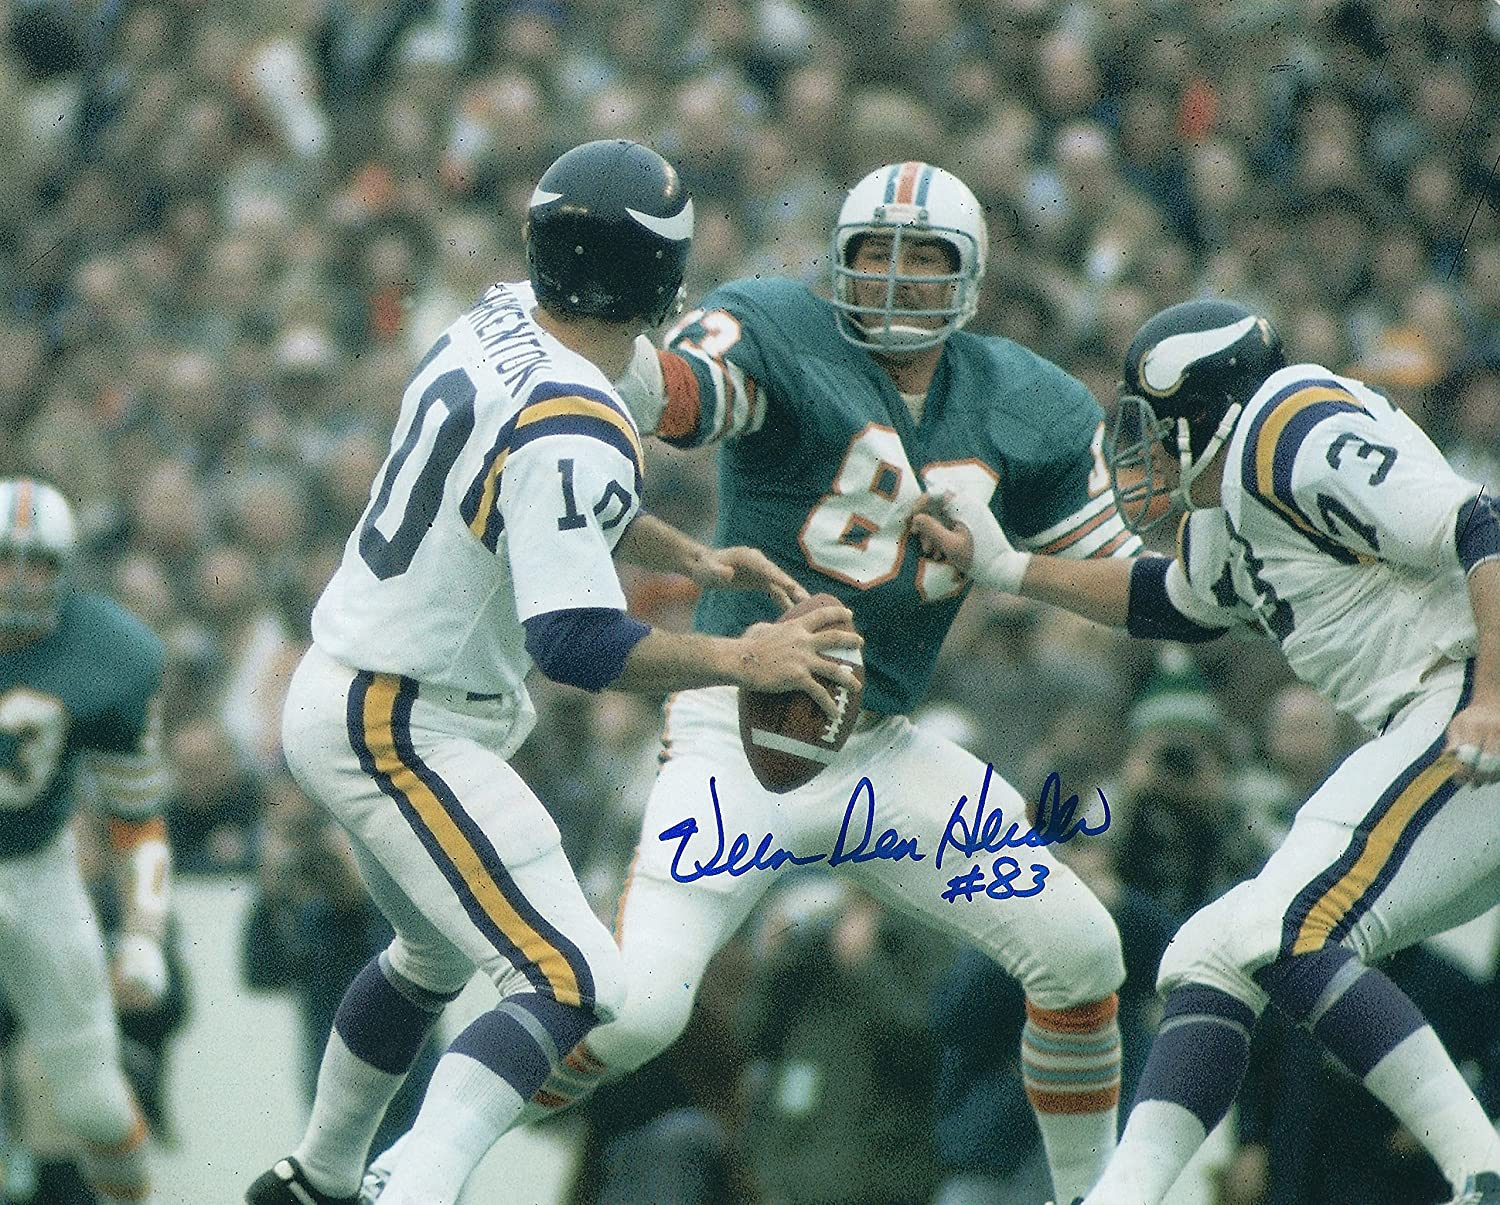 Autographed Vern Den Herder 8x10 Miami Dolphins Photo